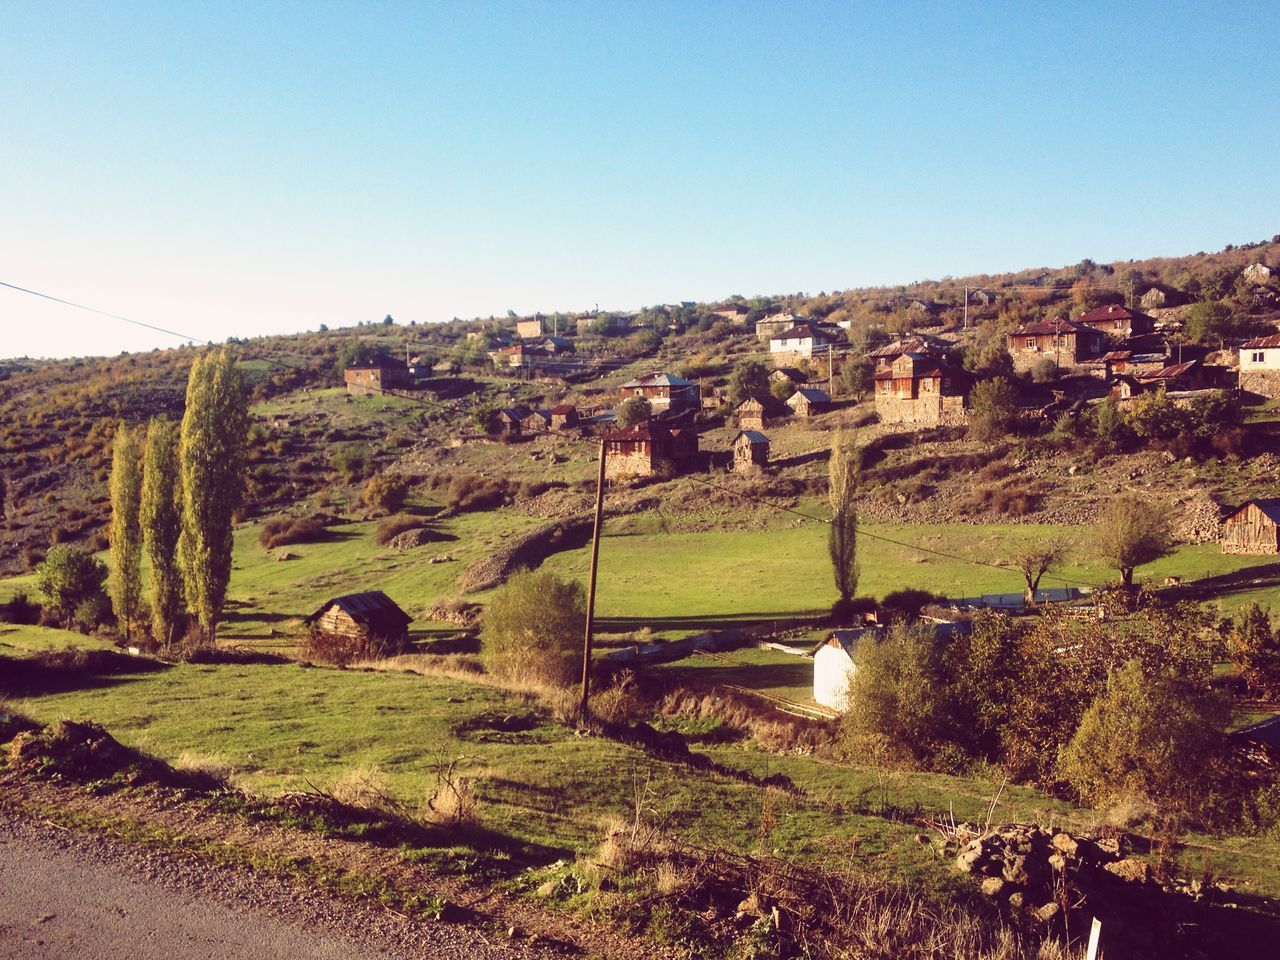 Autumn in Geriş . EyeEmTurkey View of Village . Village Life Landscape EyeEm Best Shots - Landscape Rural Rural Landscape Enjoying The View